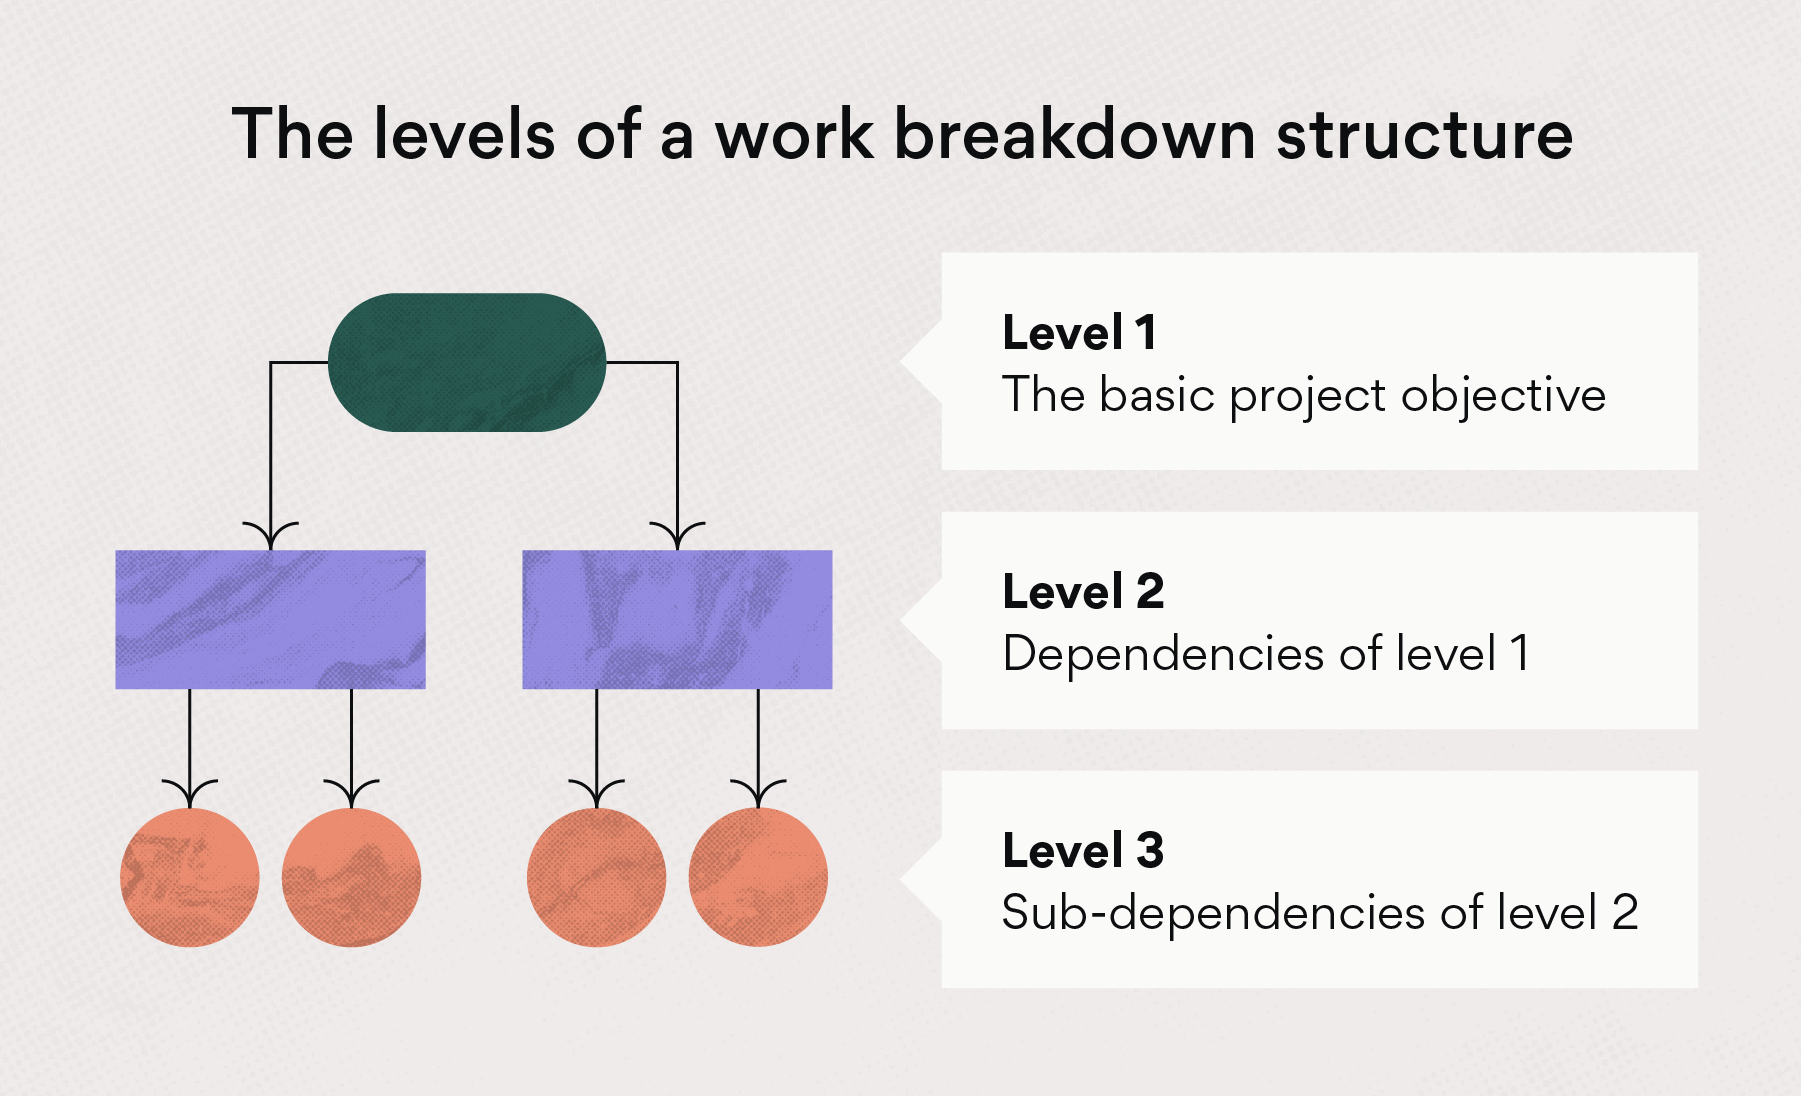 Levels of a work breakdown structure